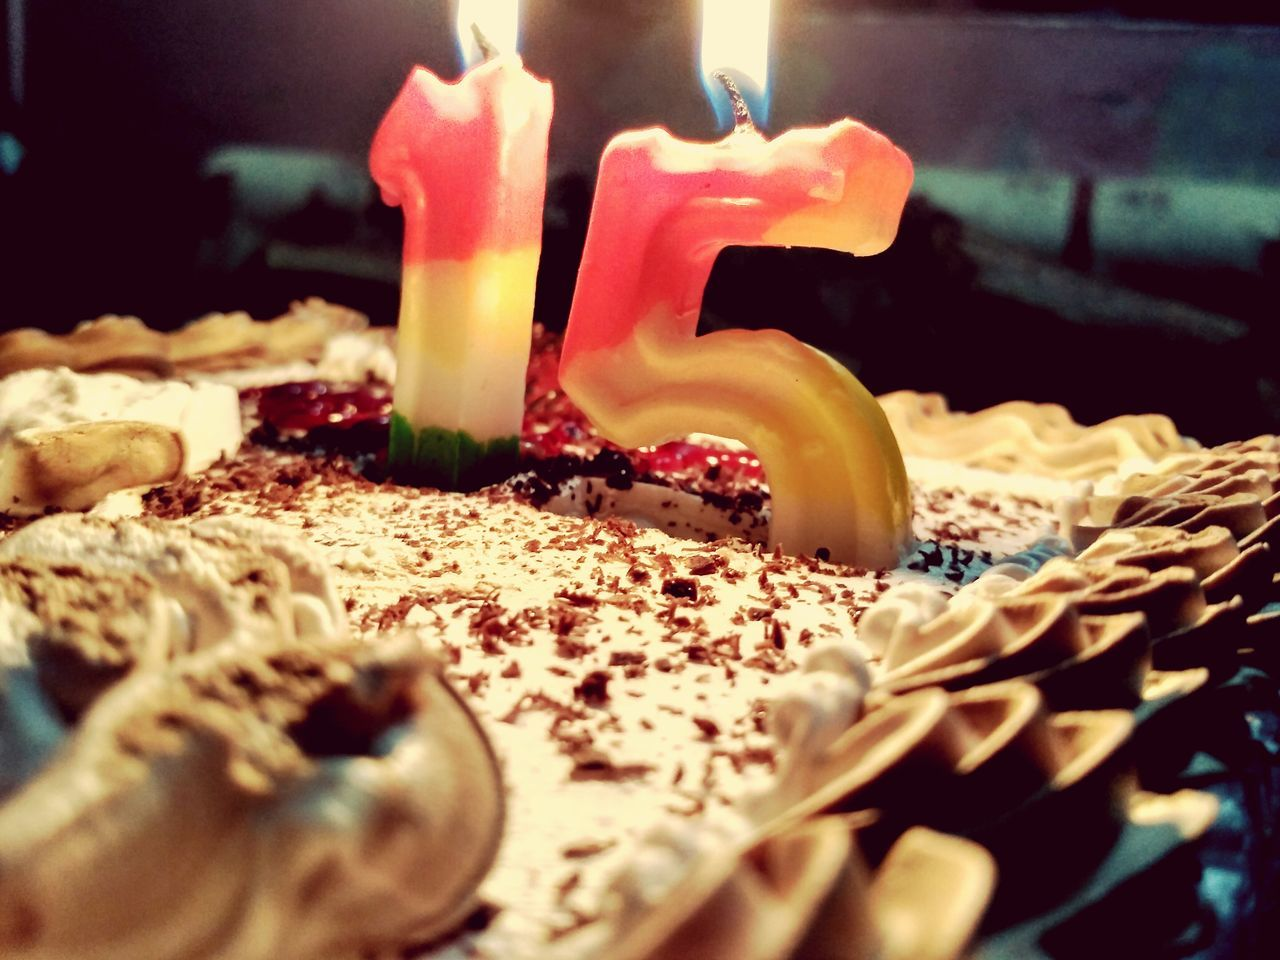 candle, flame, burning, birthday cake, birthday candles, food and drink, indoors, cake, sweet food, food, close-up, no people, birthday, melting, temptation, celebration, heat - temperature, dessert, freshness, day